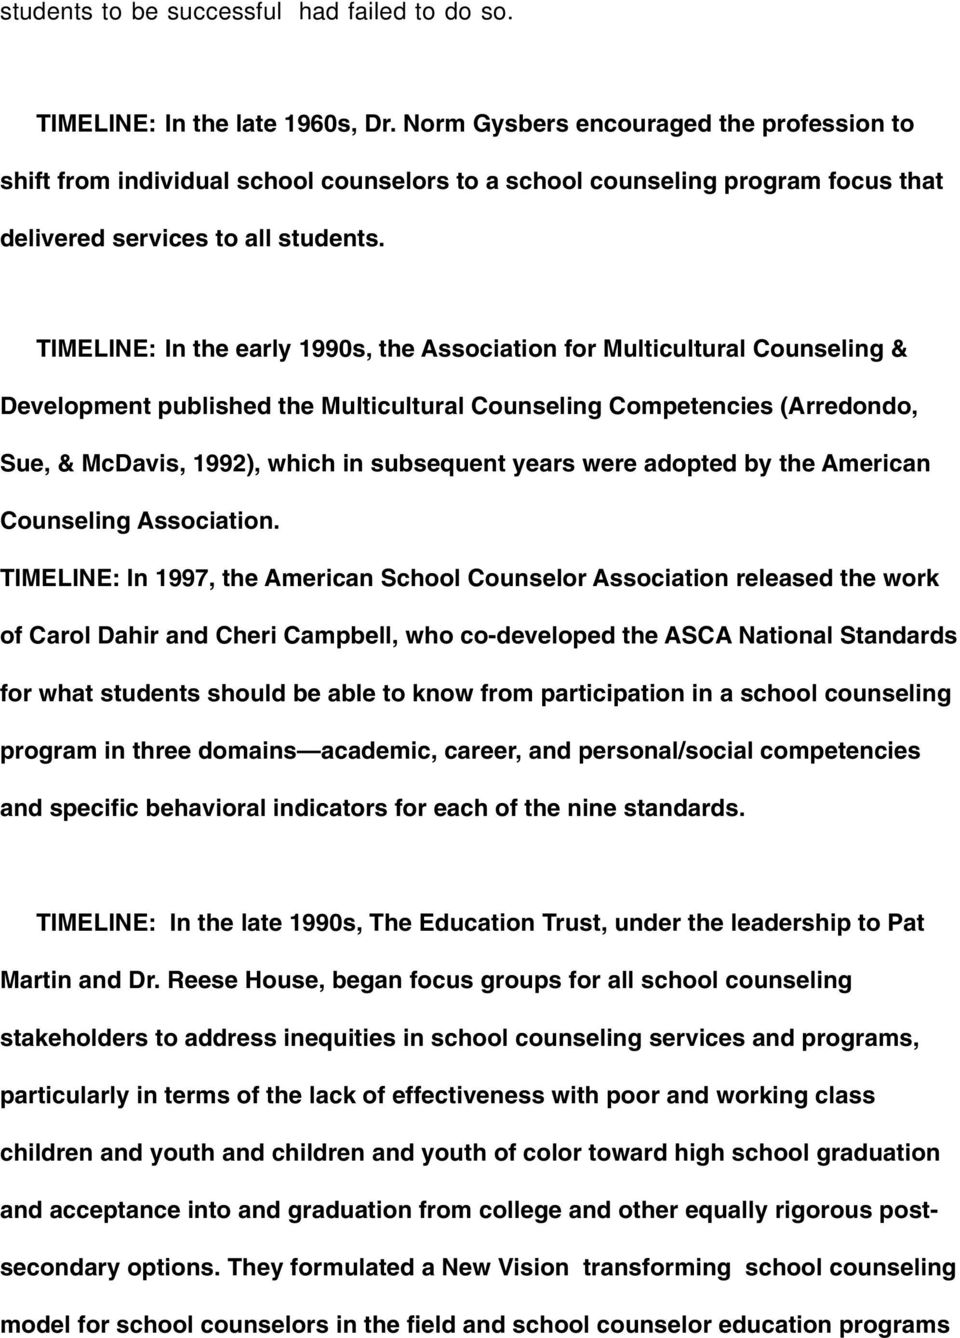 TIMELINE: In the early 1990s, the Association for Multicultural Counseling & Development published the Multicultural Counseling Competencies (Arredondo, Sue, & McDavis, 1992), which in subsequent